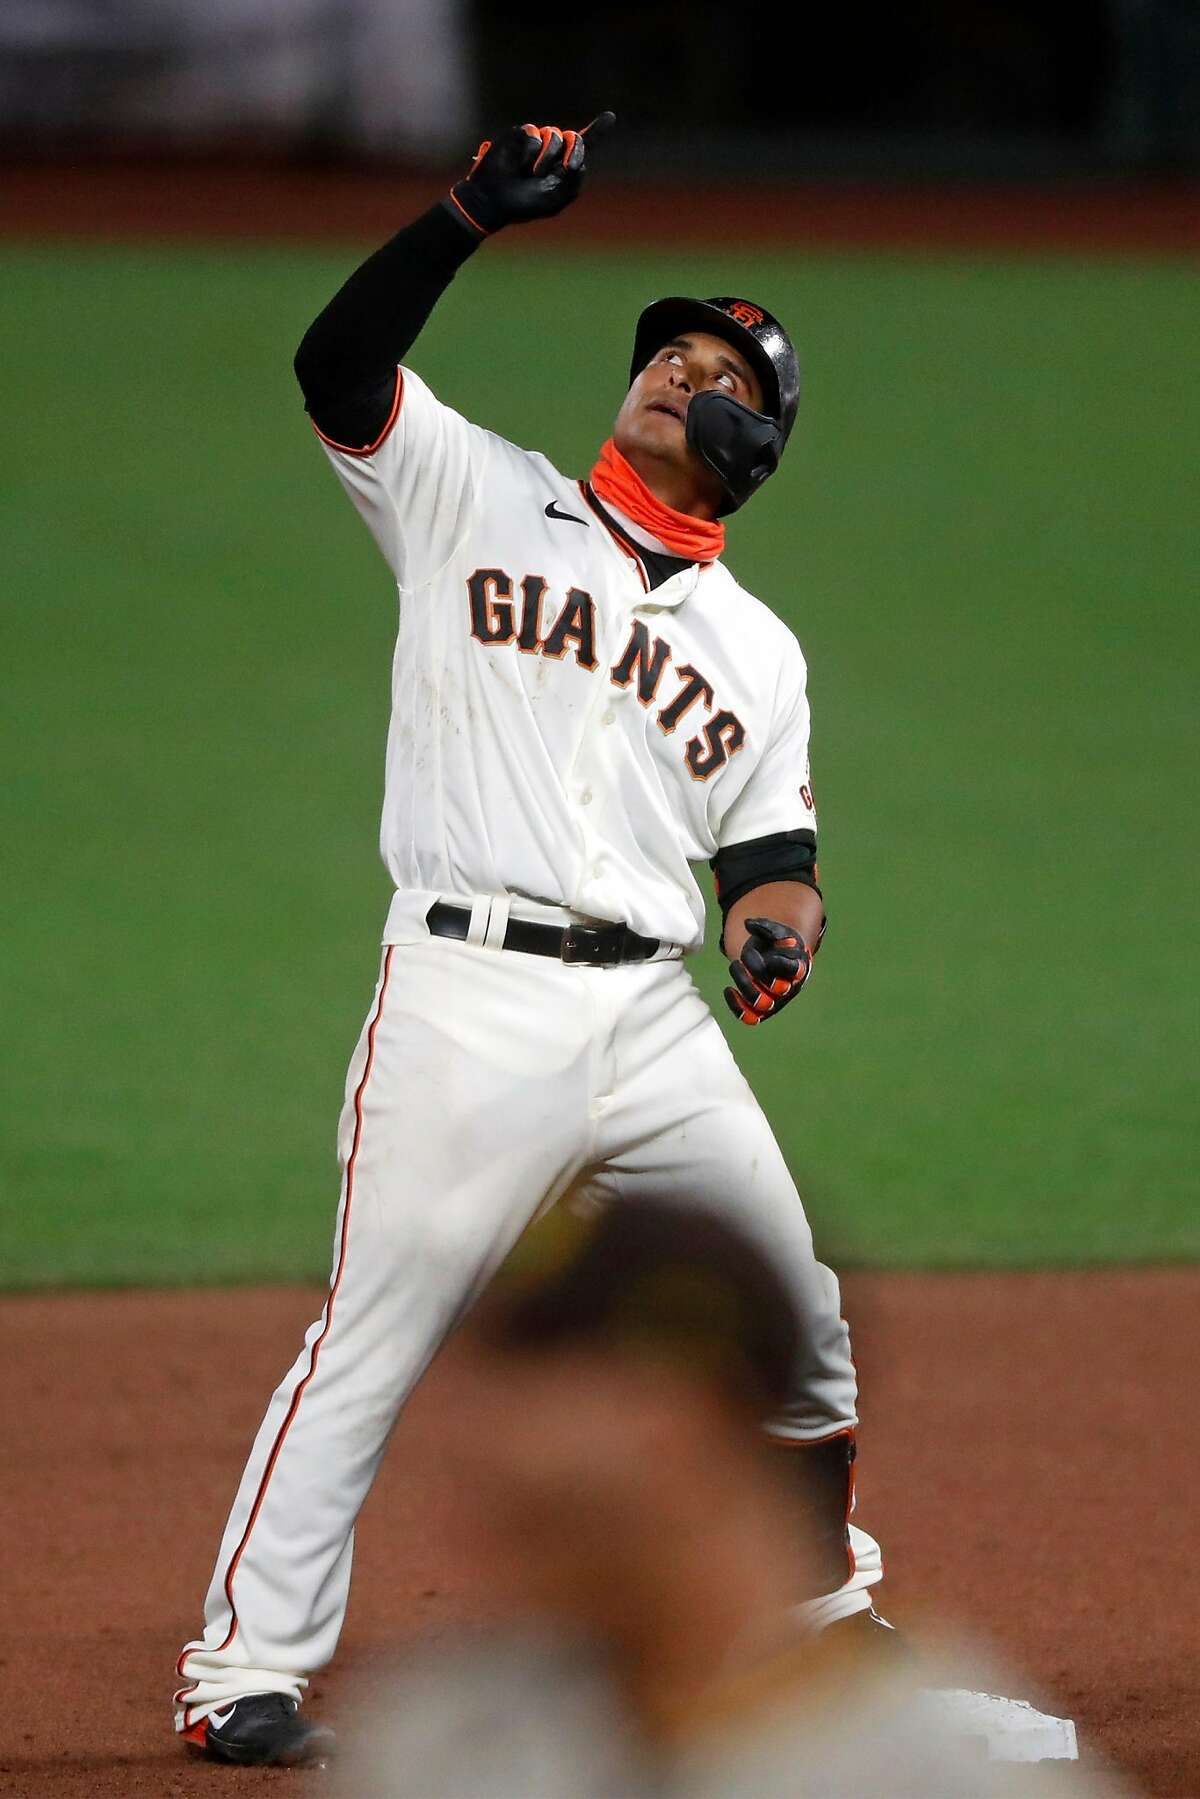 San Francisco Giants' Donovan Solano reacts to his RBI double in 7th inning against San Diego Padres during MLB game at Oracle Park in San Francisco, Calif., on Thursday, July 30, 2020.